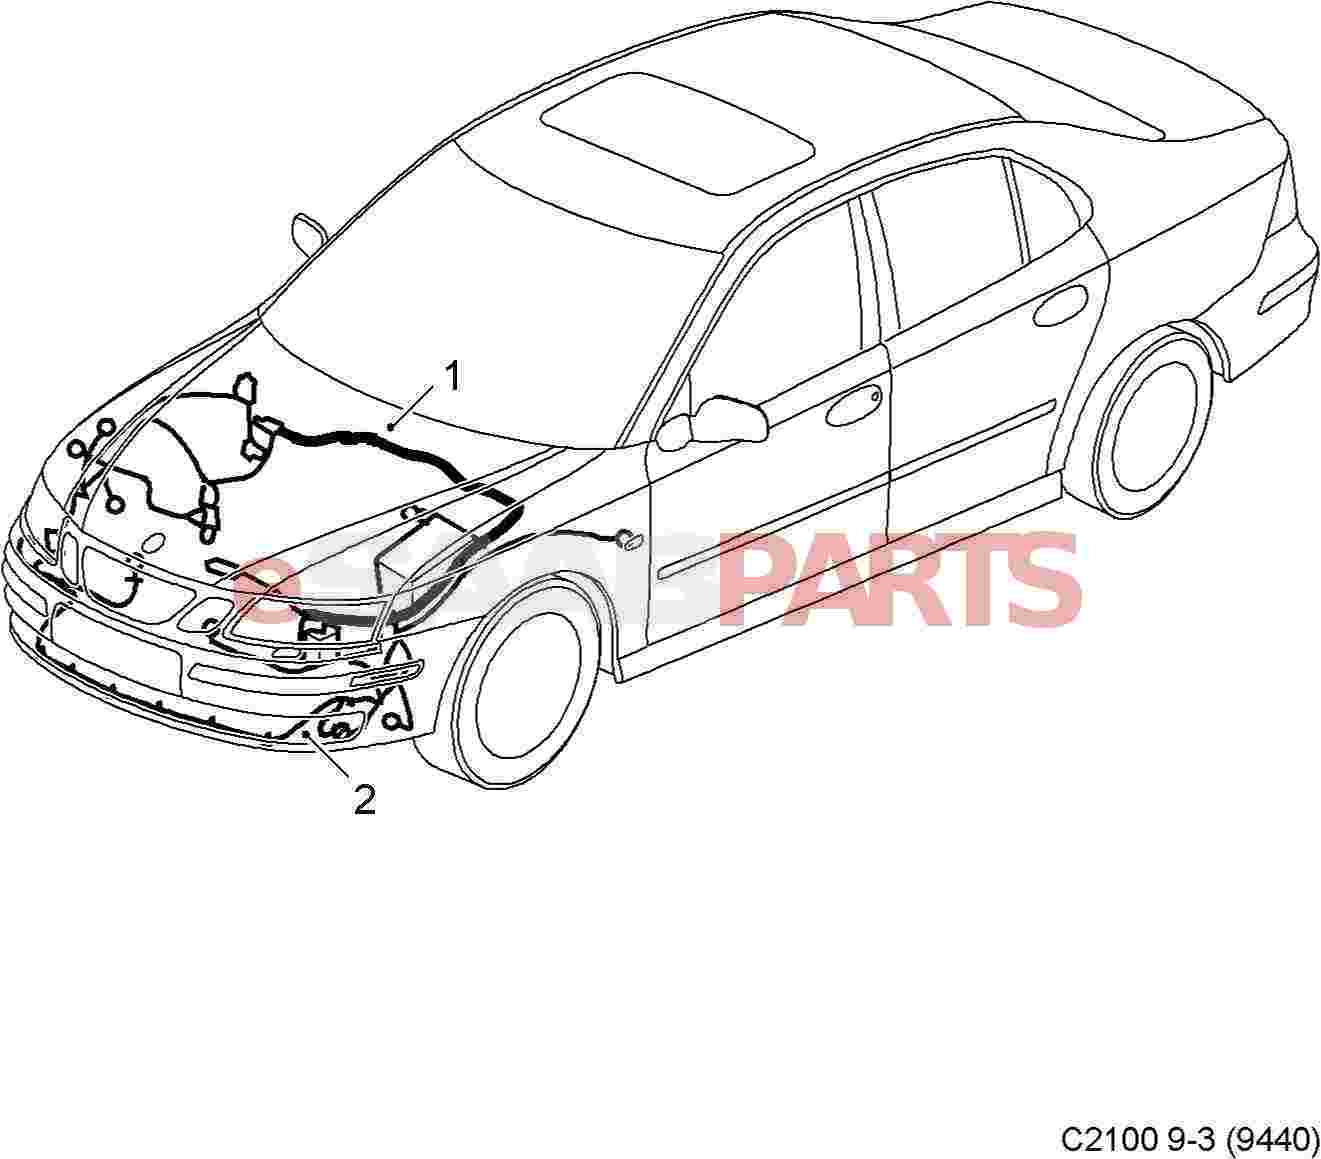 hight resolution of esaabparts com saab 9 3 9440 electrical parts wiring harness front bumper front